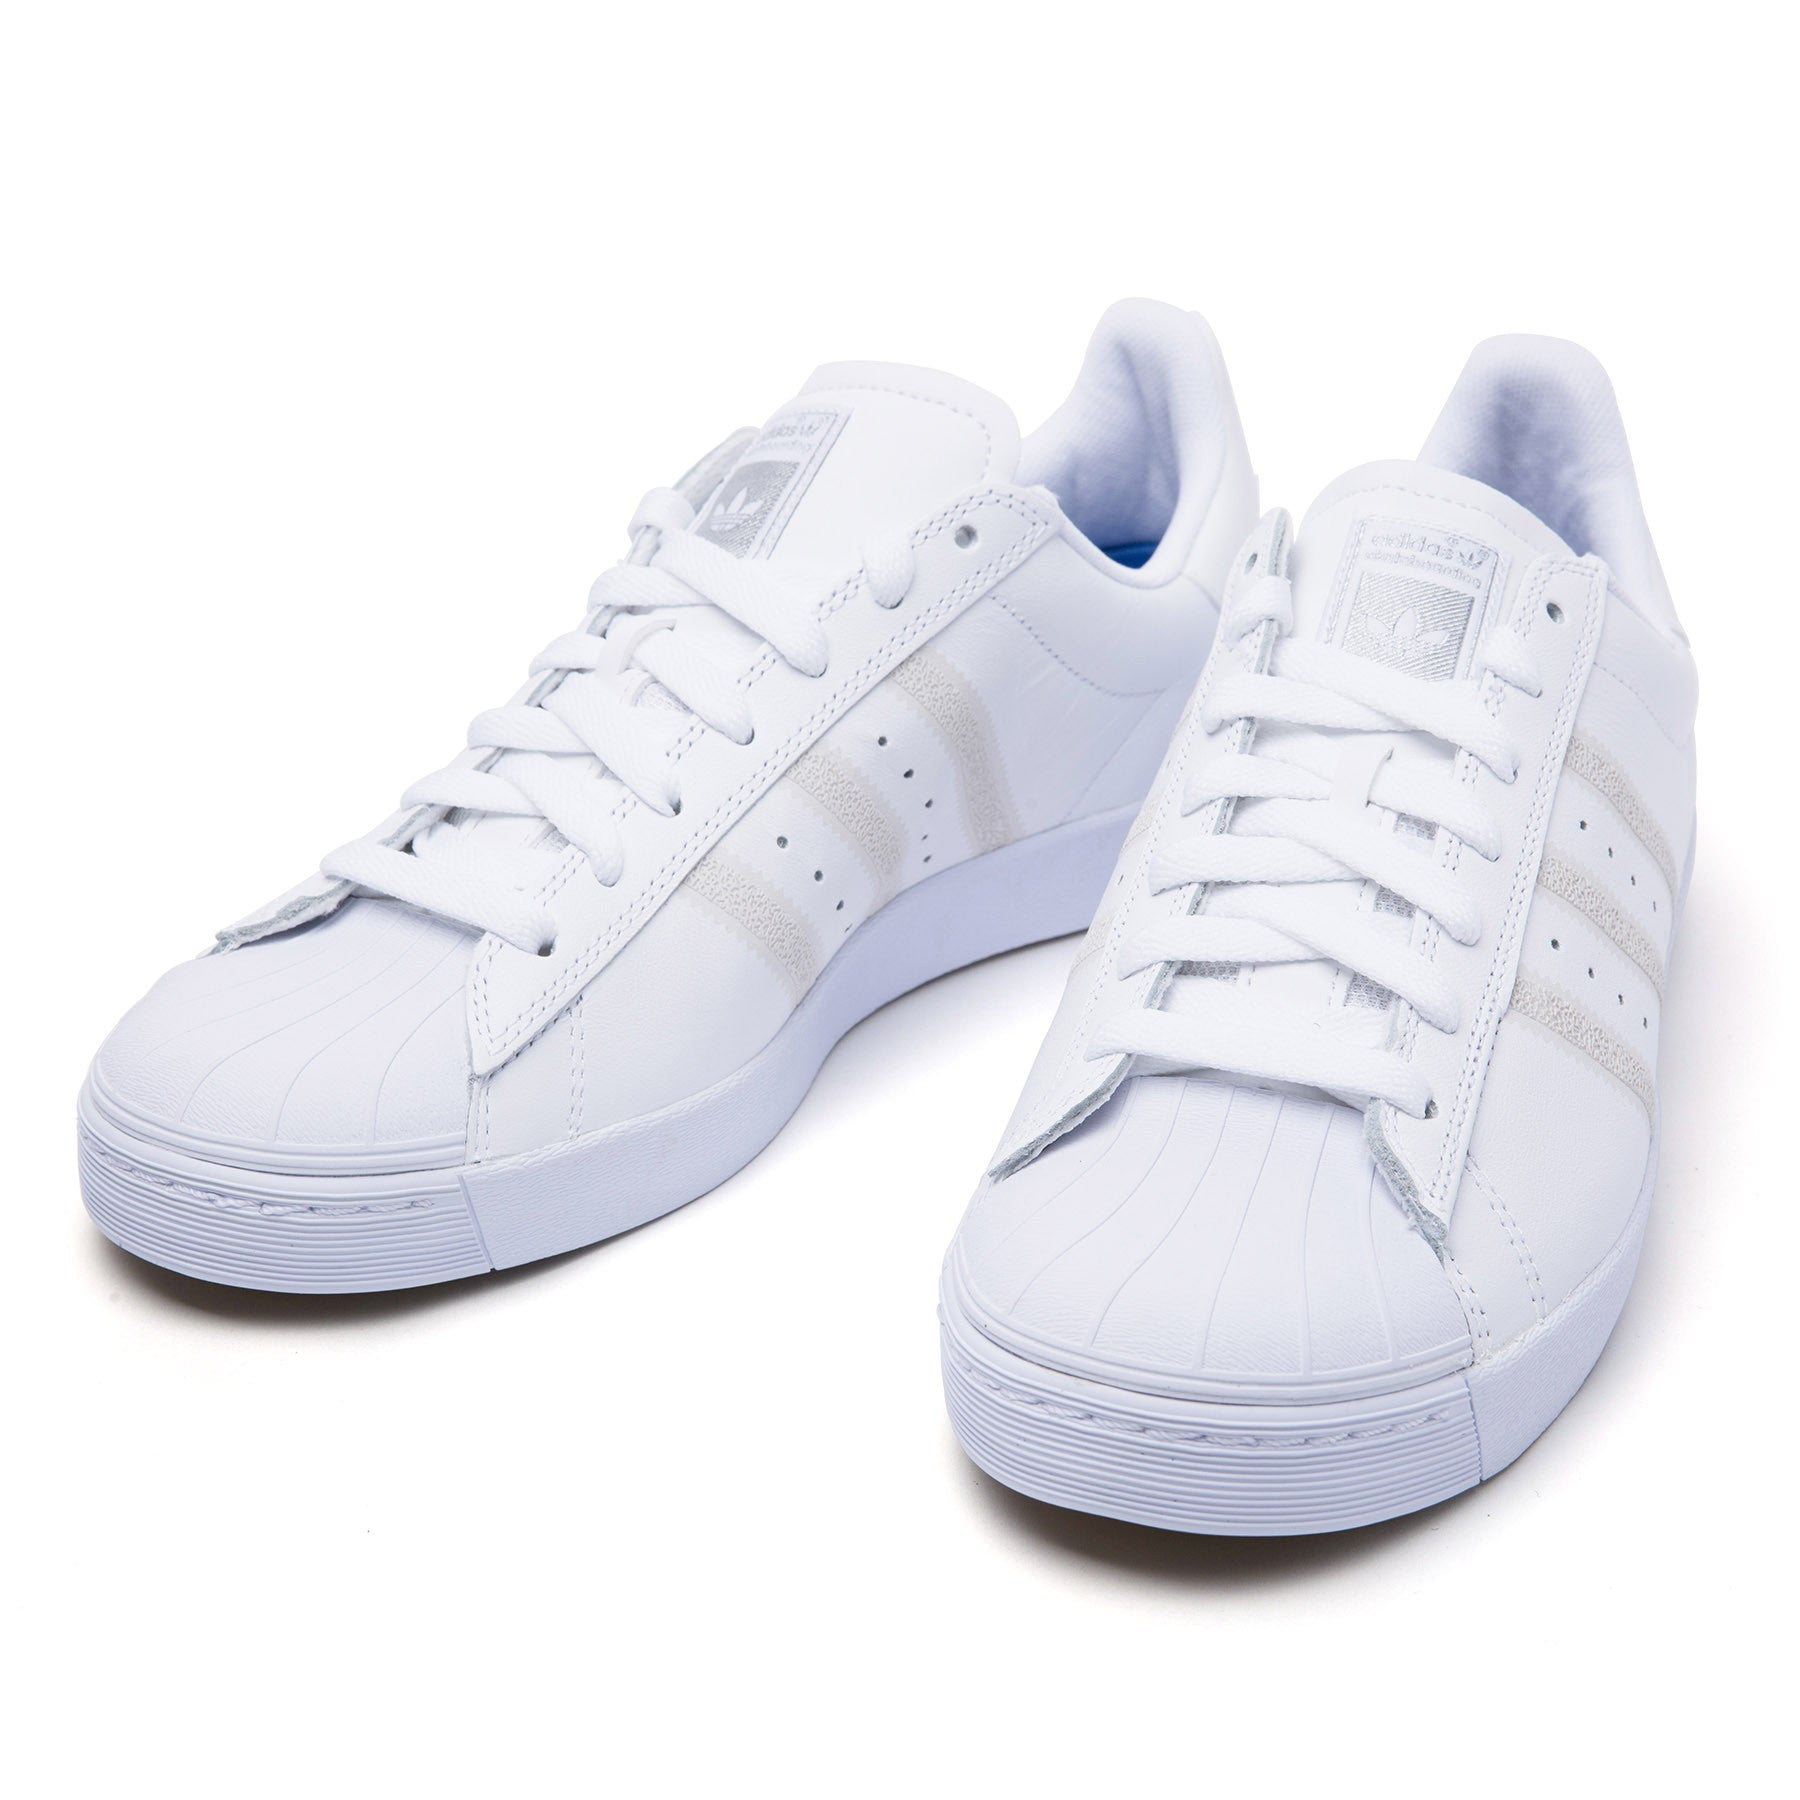 The Best Choice Model 2017 Cheap Adidas Superstar II Woman Is What the